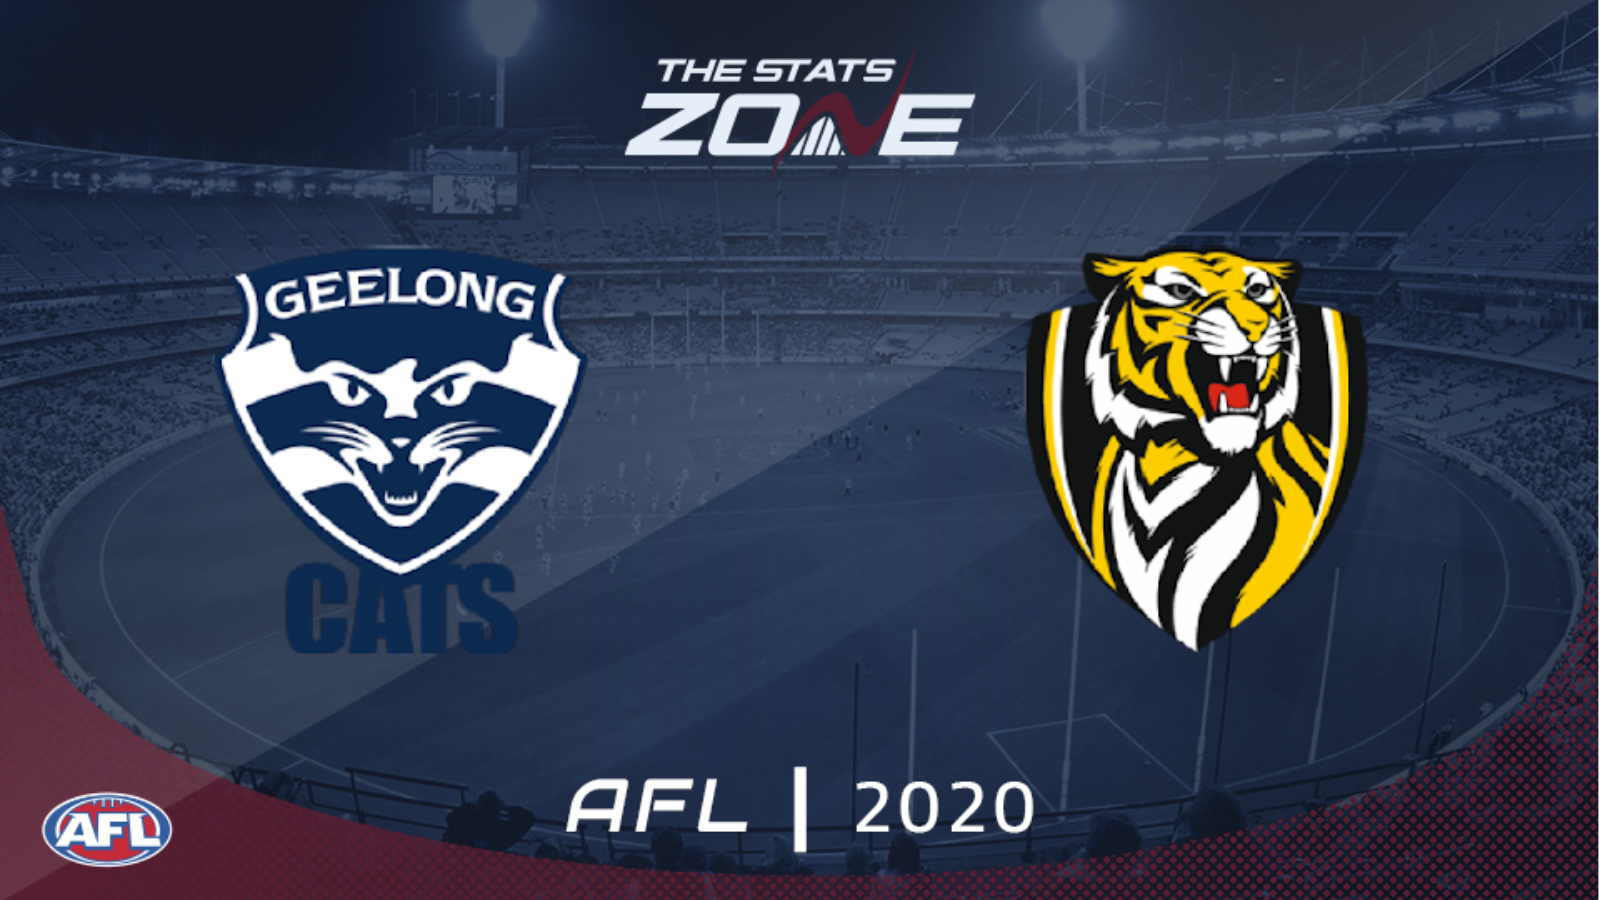 2020 Afl Geelong Cats Vs Richmond Preview Prediction The Stats Zone